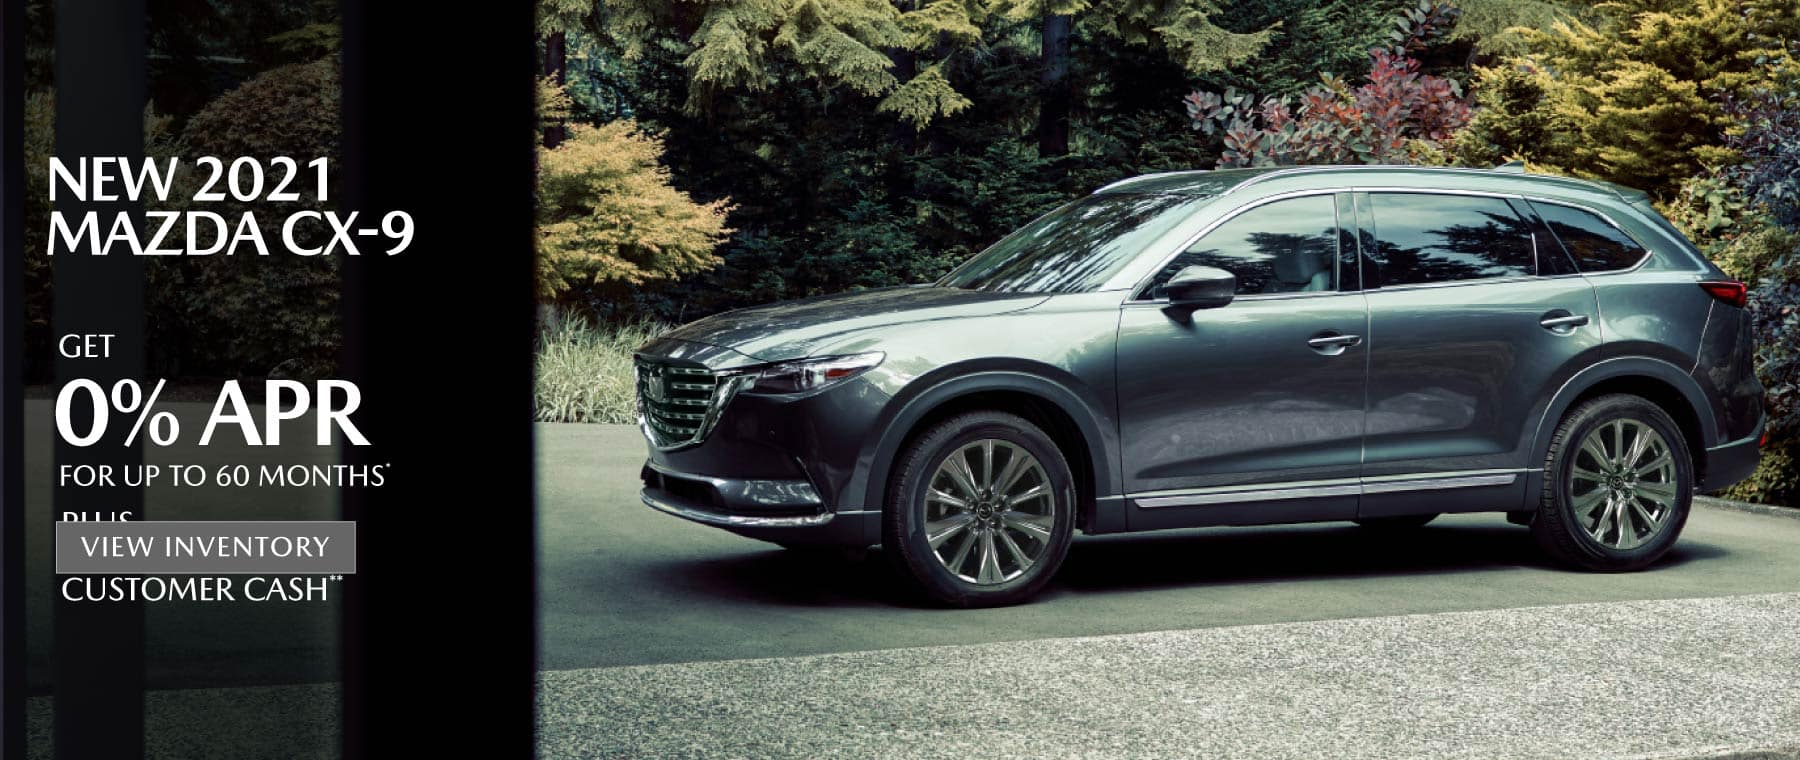 New 2021 MAZDA CX-9 – 0% APR for up to 60 months*